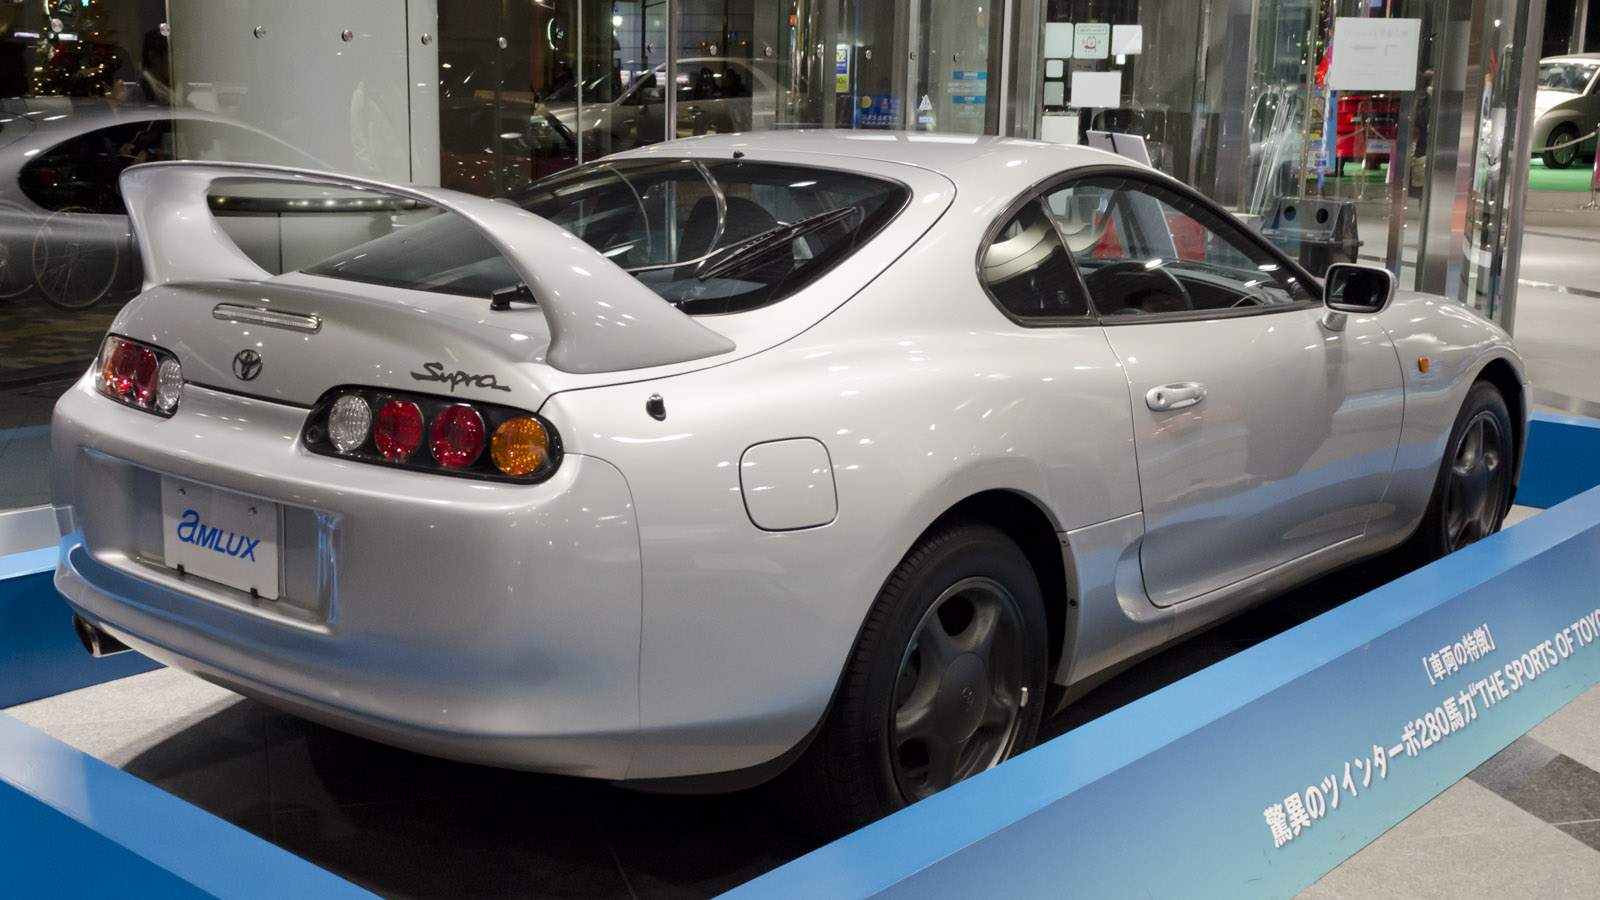 Toyota Supra 2jz For Sale Perth also File 1993 Toyota Supra 02 moreover Toyota Sw20 Mr2 further We5jjm9 besides Fd rx7 mazda toyota. on toyota supra 2jz